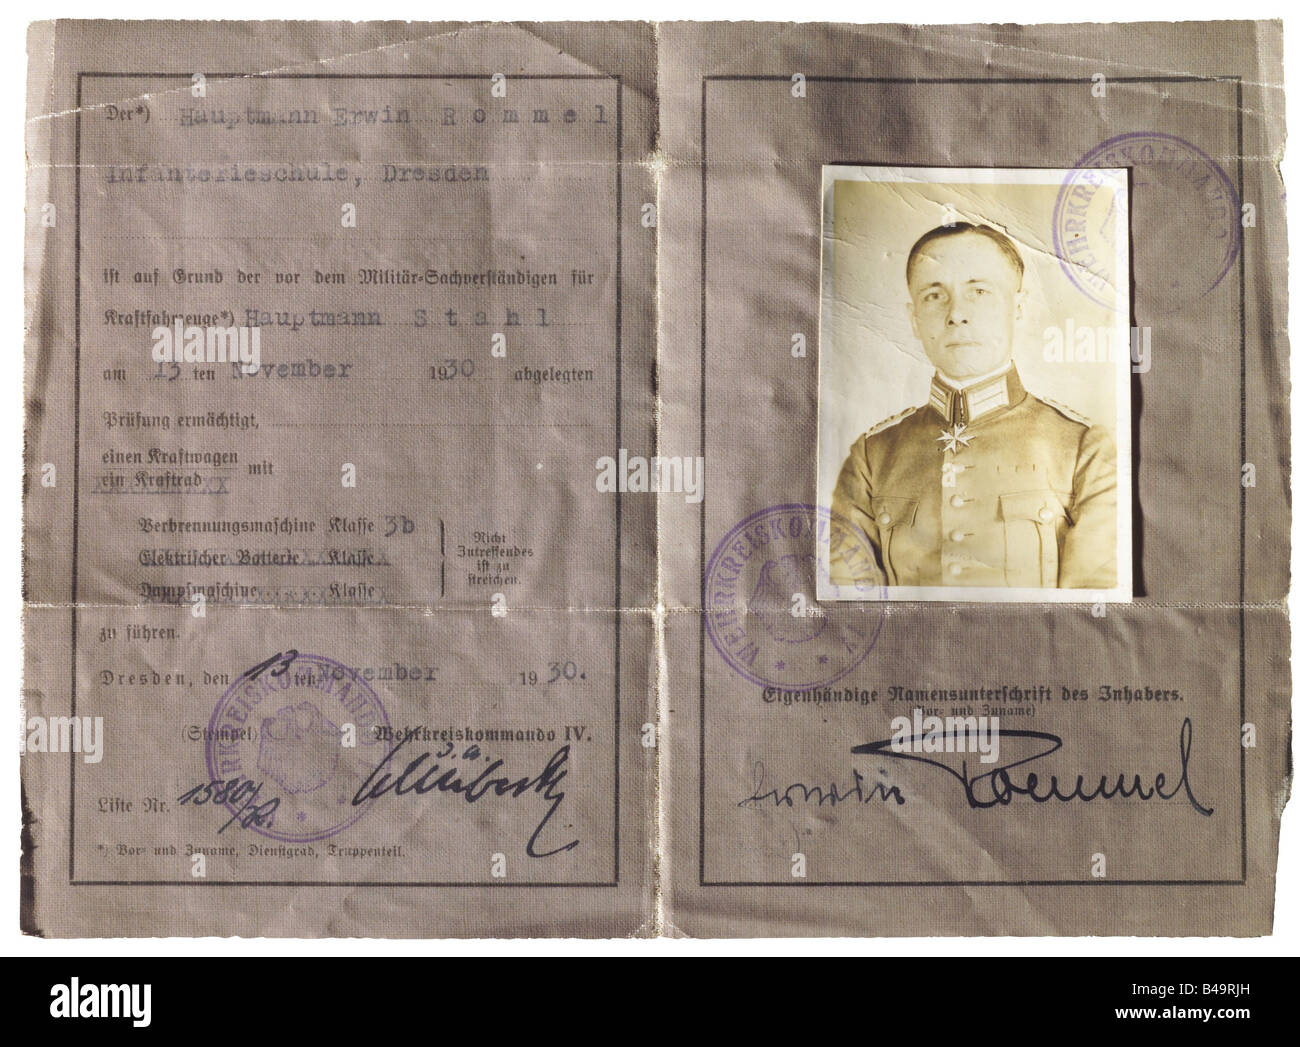 Rommel, Erwin, 15.11.1891 - 14.10.1944, German General, his military driving licence, Dresden 13.11.1930, Additional - Stock Image